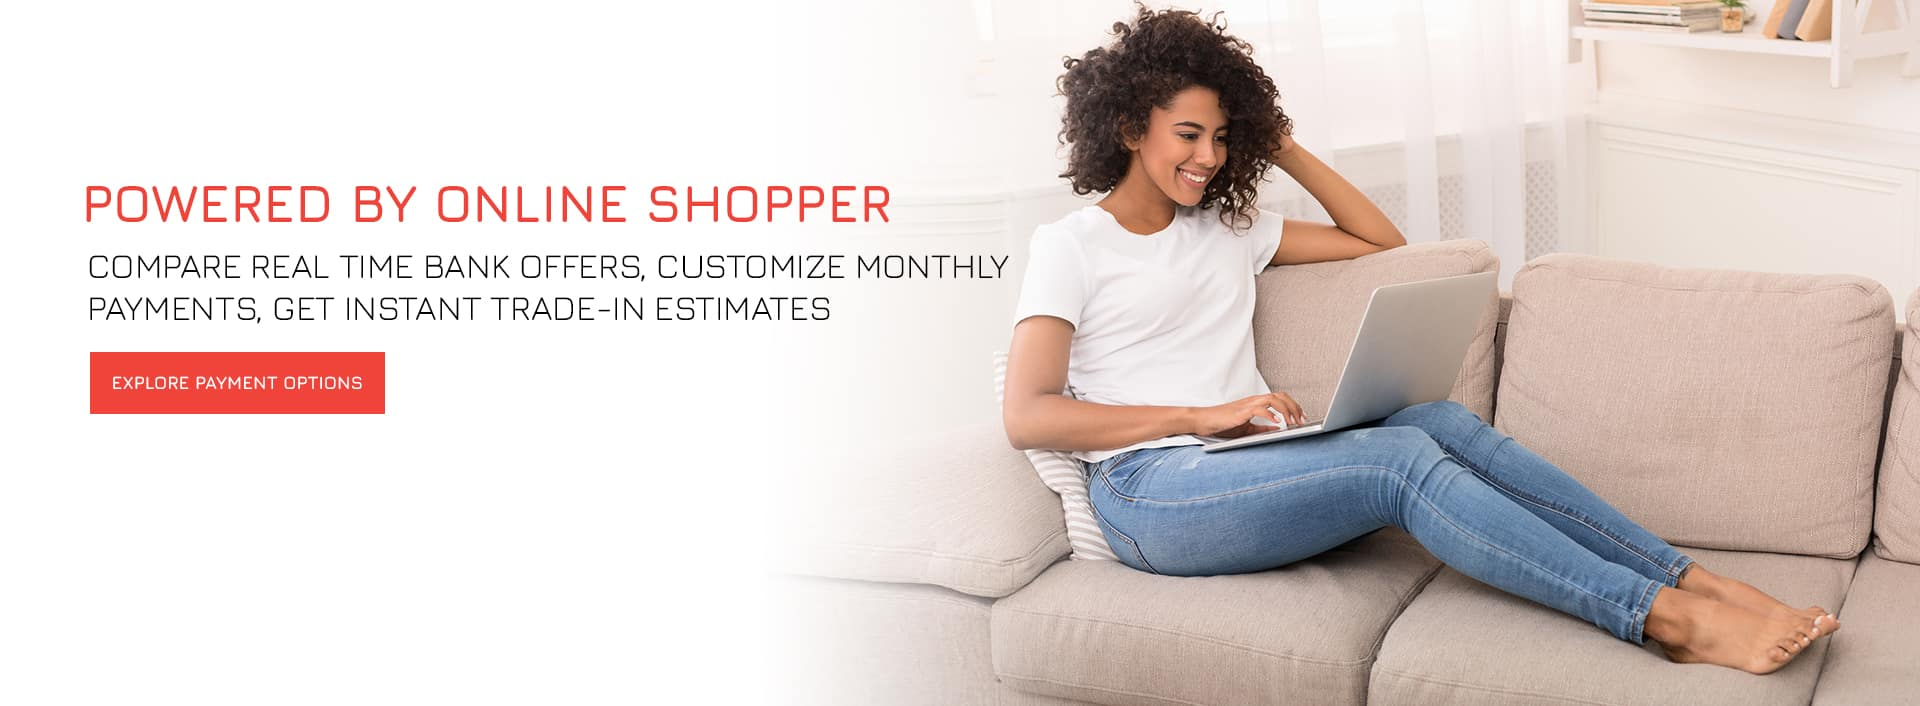 Compare real time bank offers, customize monthly payments, and get instant trade-in estimates!